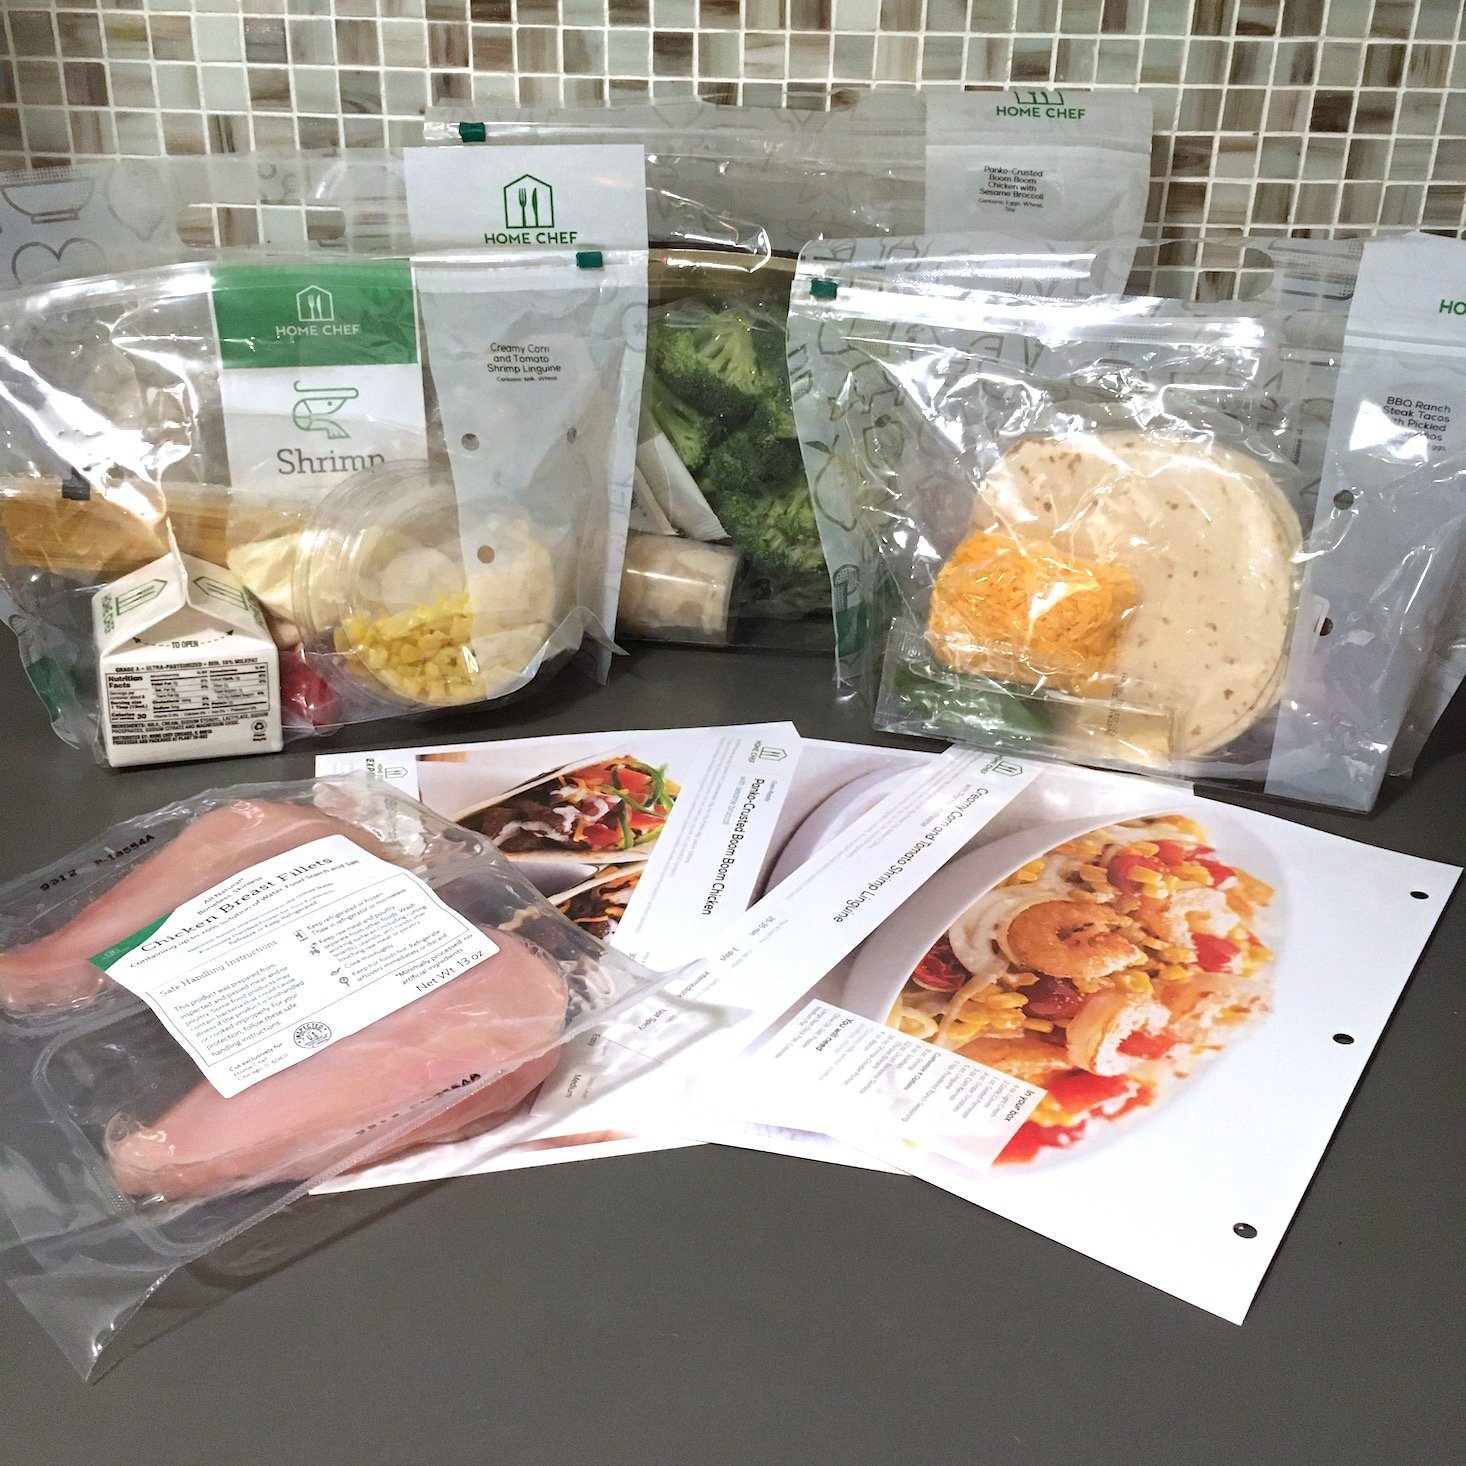 Home Chef Meal Kit Review + Coupon - December 2019